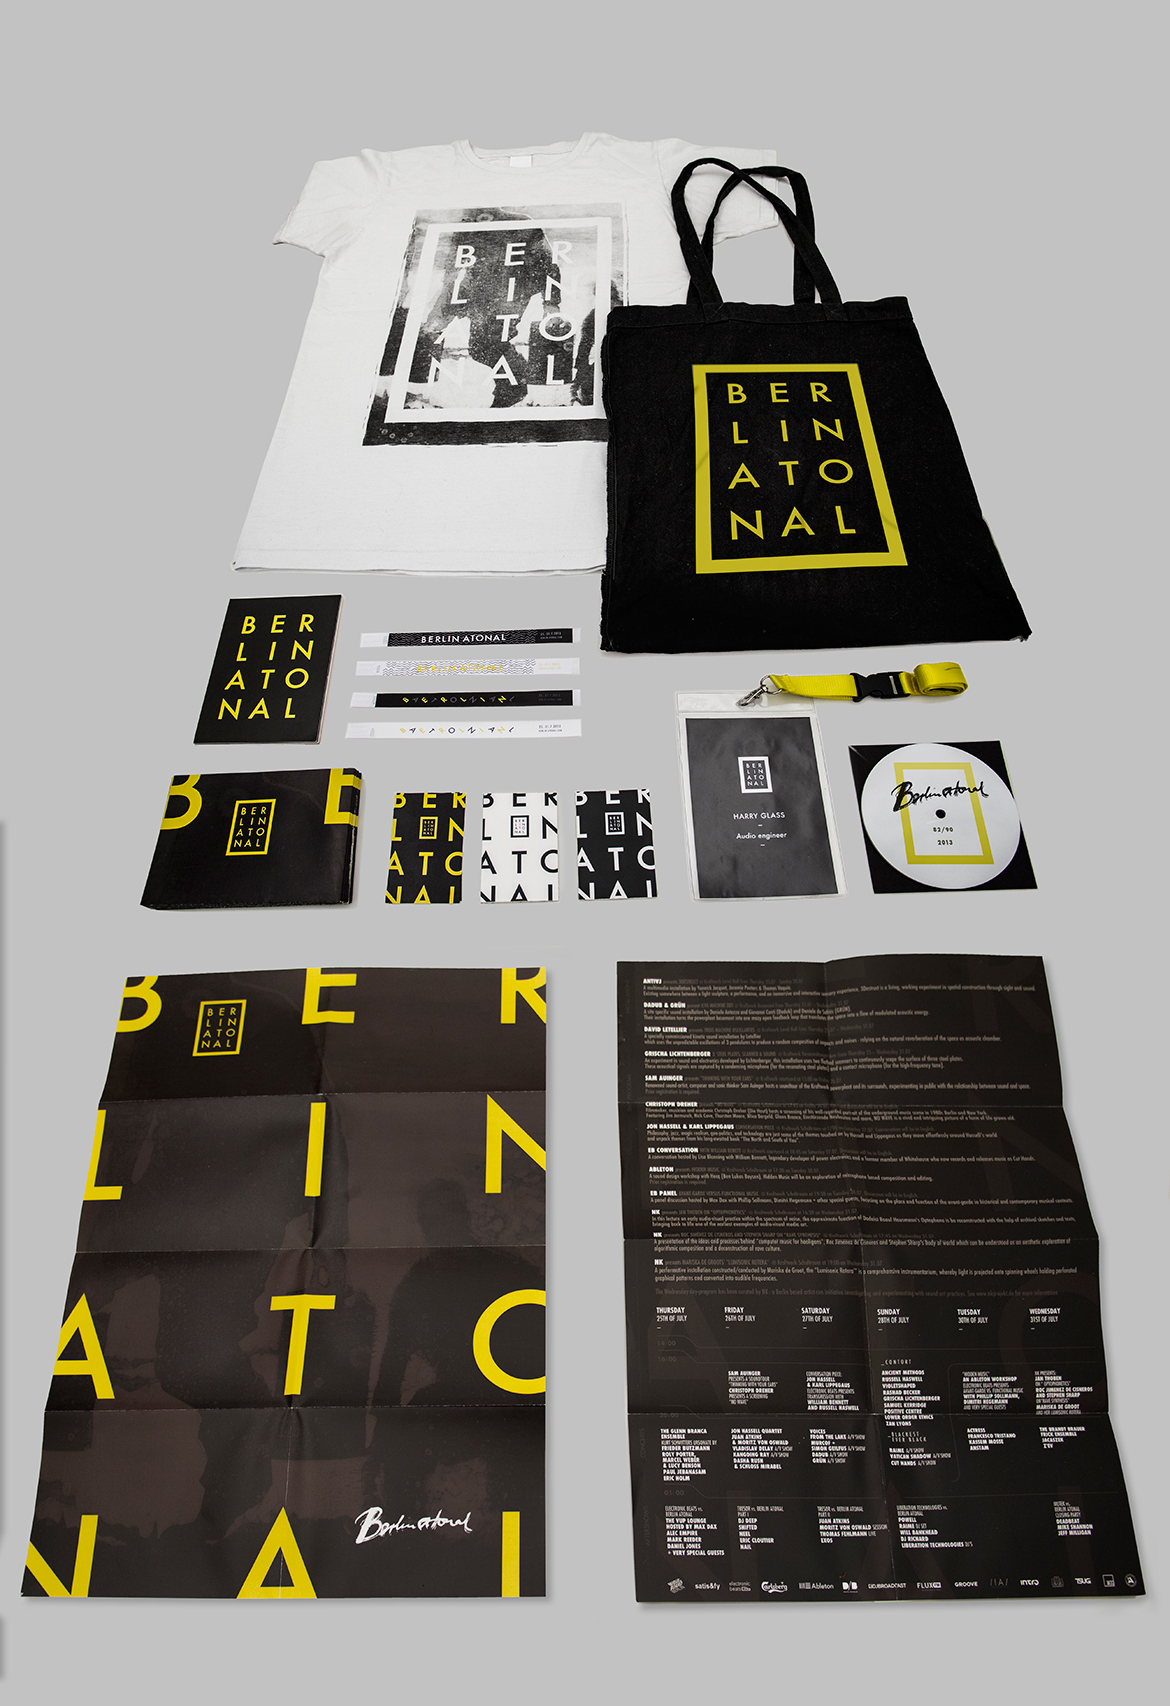 ©-rabadaun-Berlin-_Atonal_13-All_applications